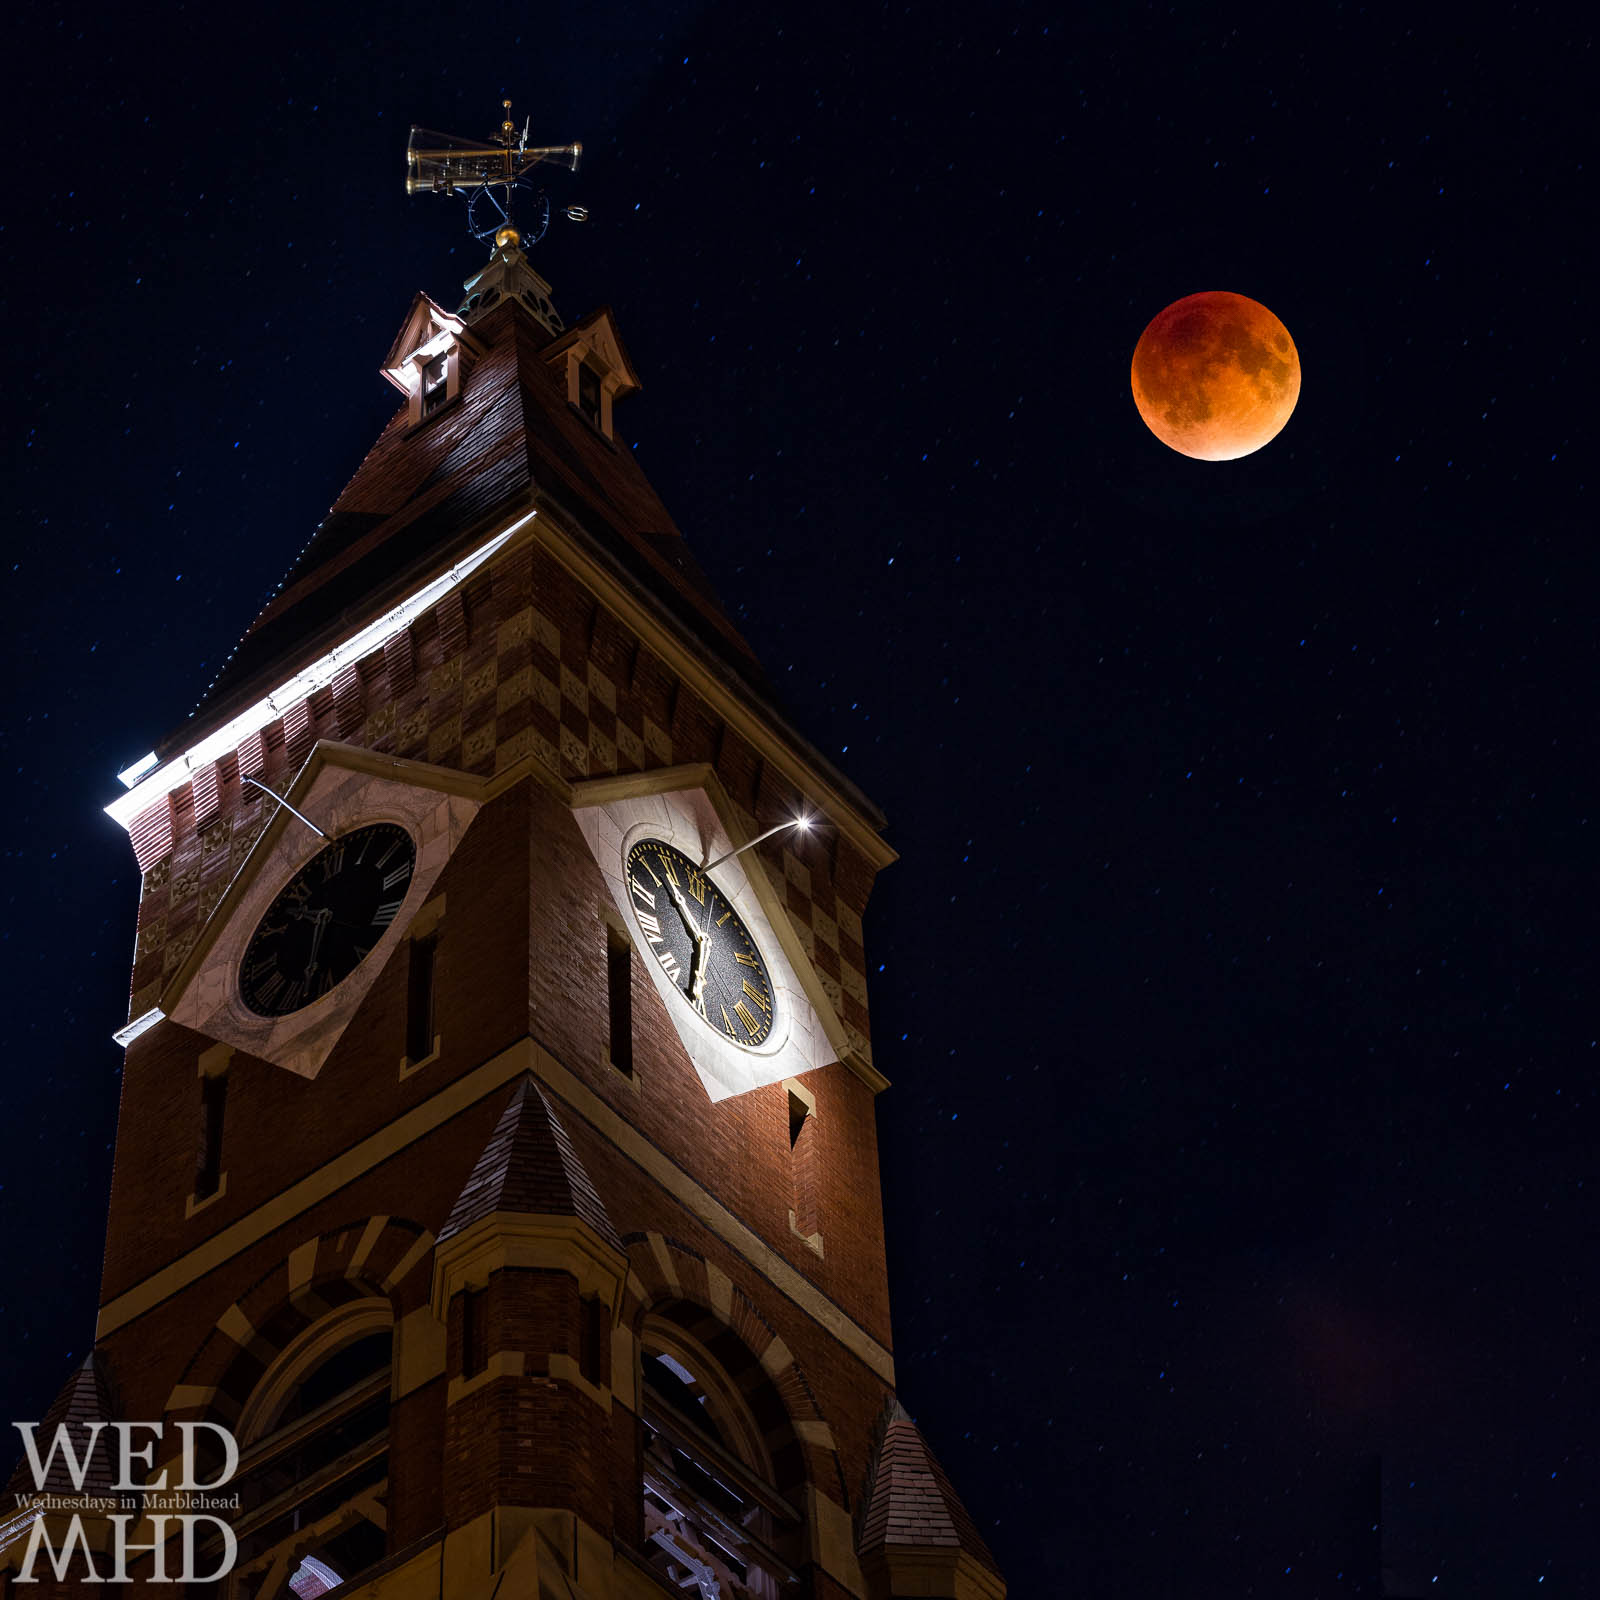 A total lunar eclipse cast the supermoon in a blood red color near Abbot Hall